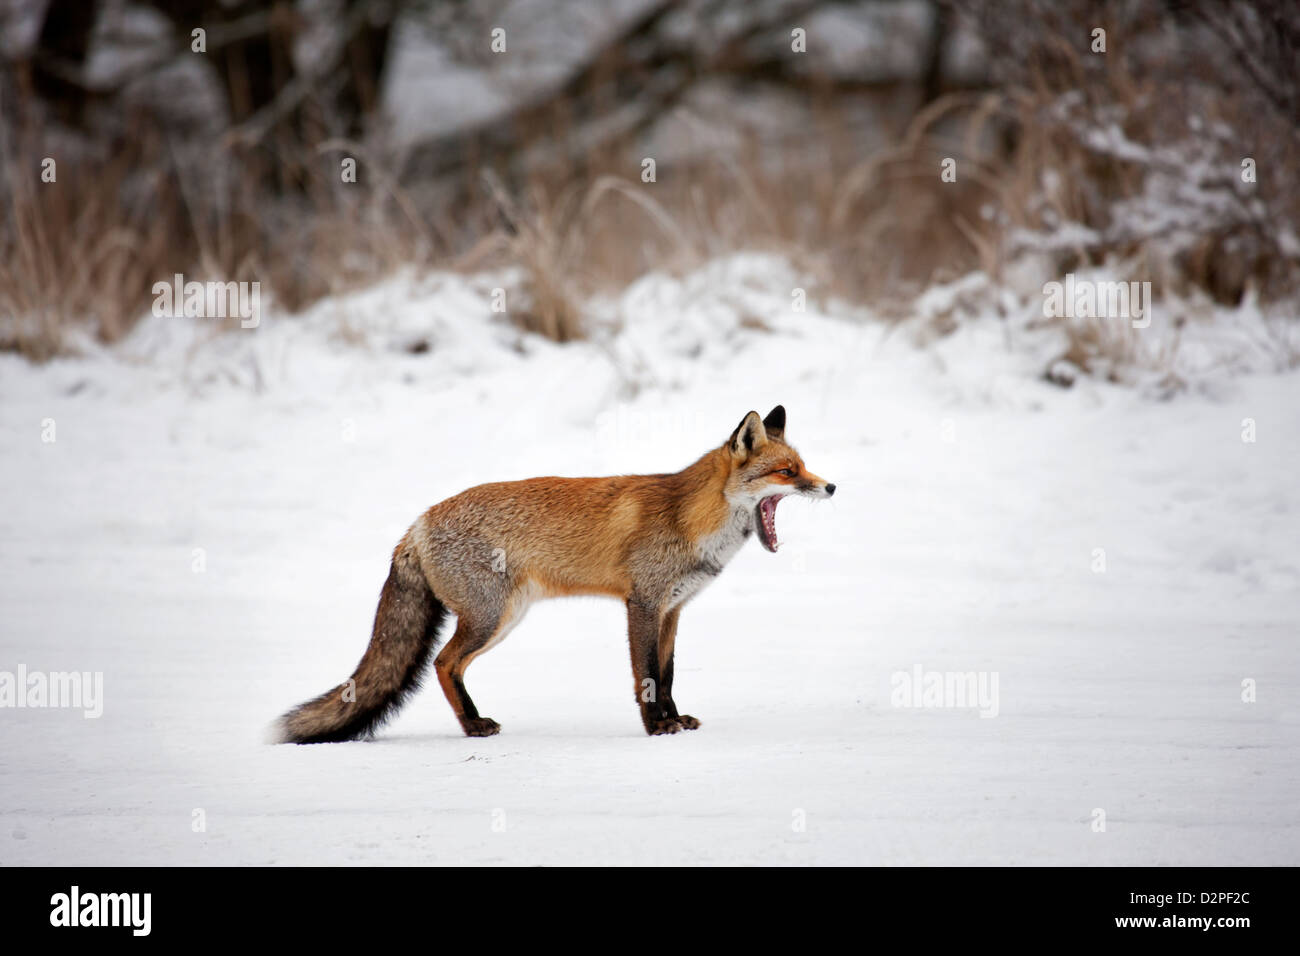 Red fox (Vulpes vulpes) yawning / yelping in grassland along forest edge in the snow in winter - Stock Image